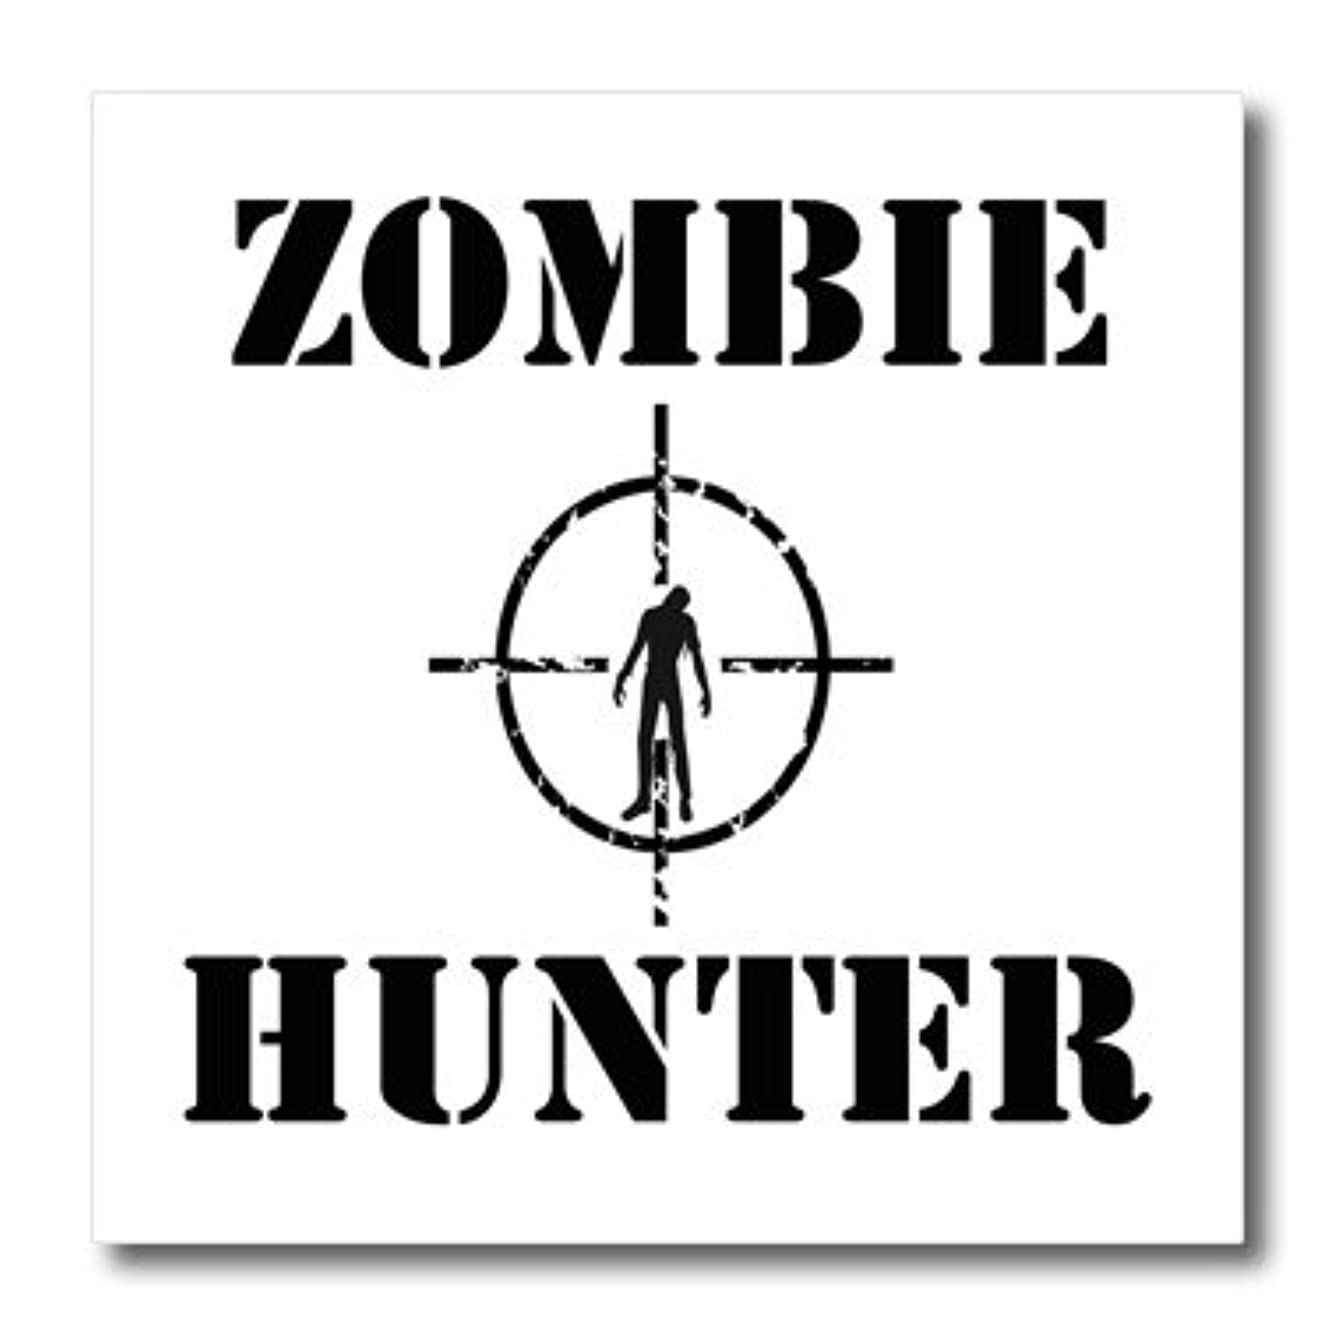 3dRose ht_161176_2 Zombie Hunter-Iron on Heat Transfer Paper for White Material, 6 by 6-Inch